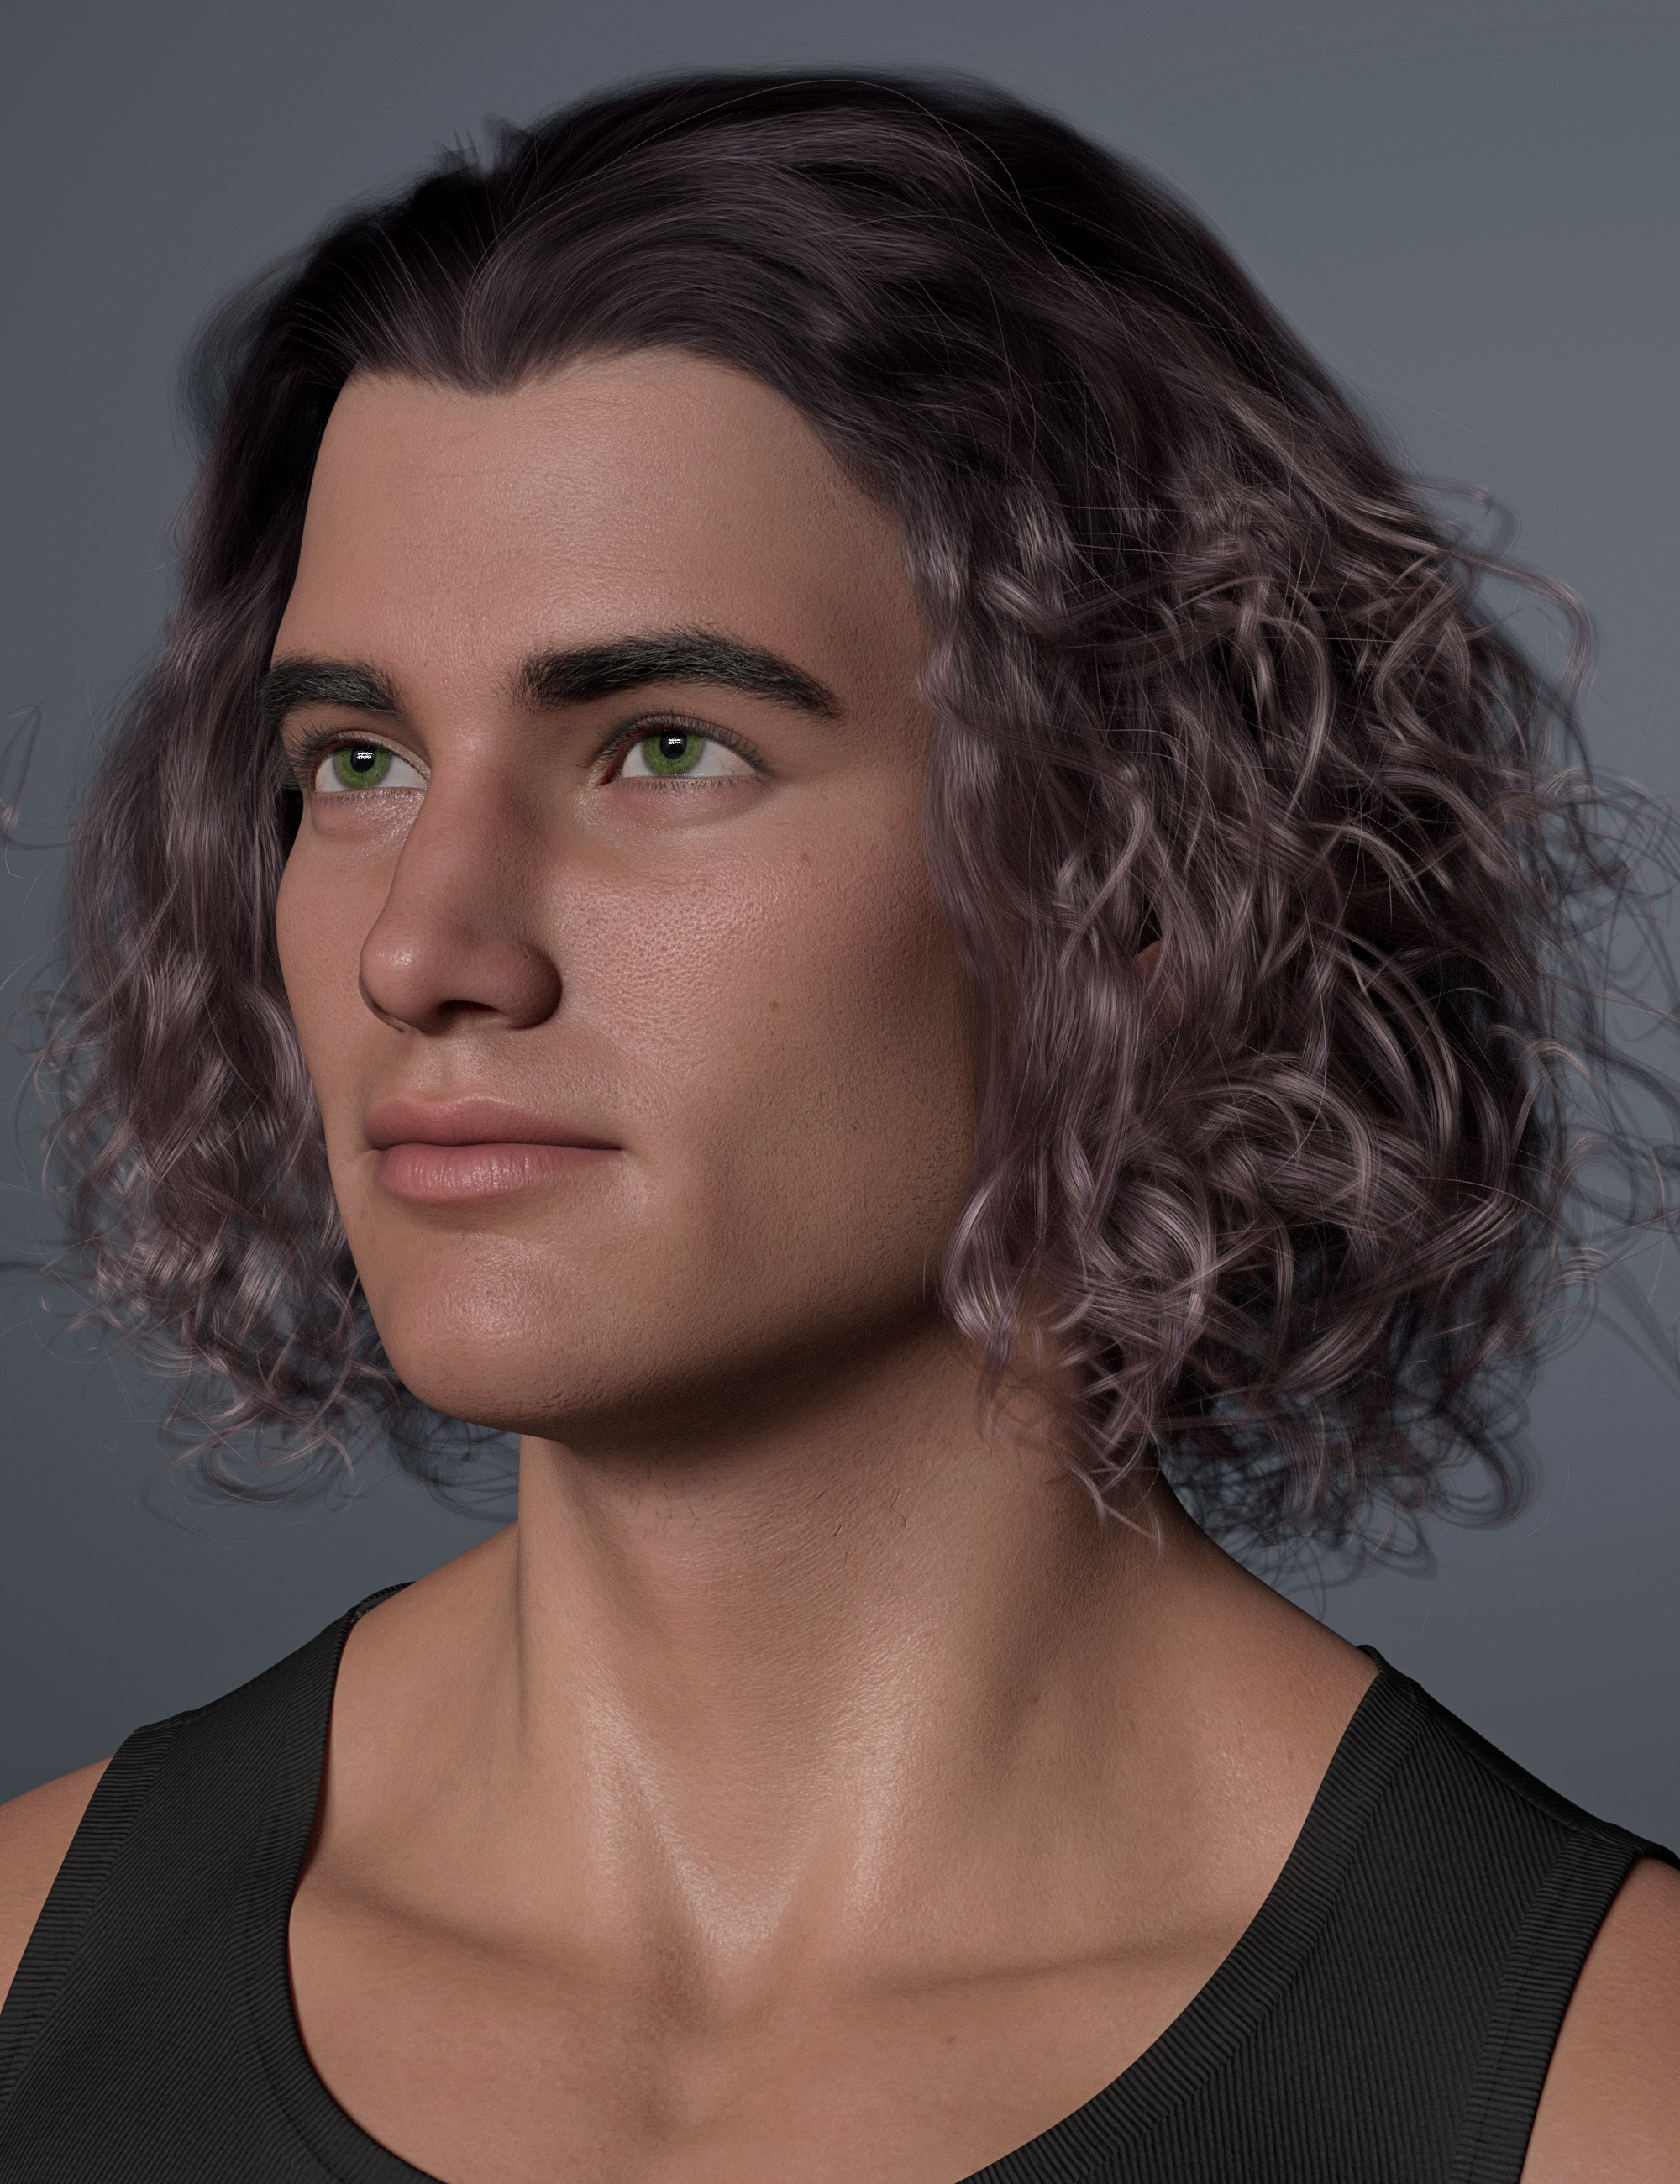 Curly Swept Style Hair Textures by: outoftouch, 3D Models by Daz 3D